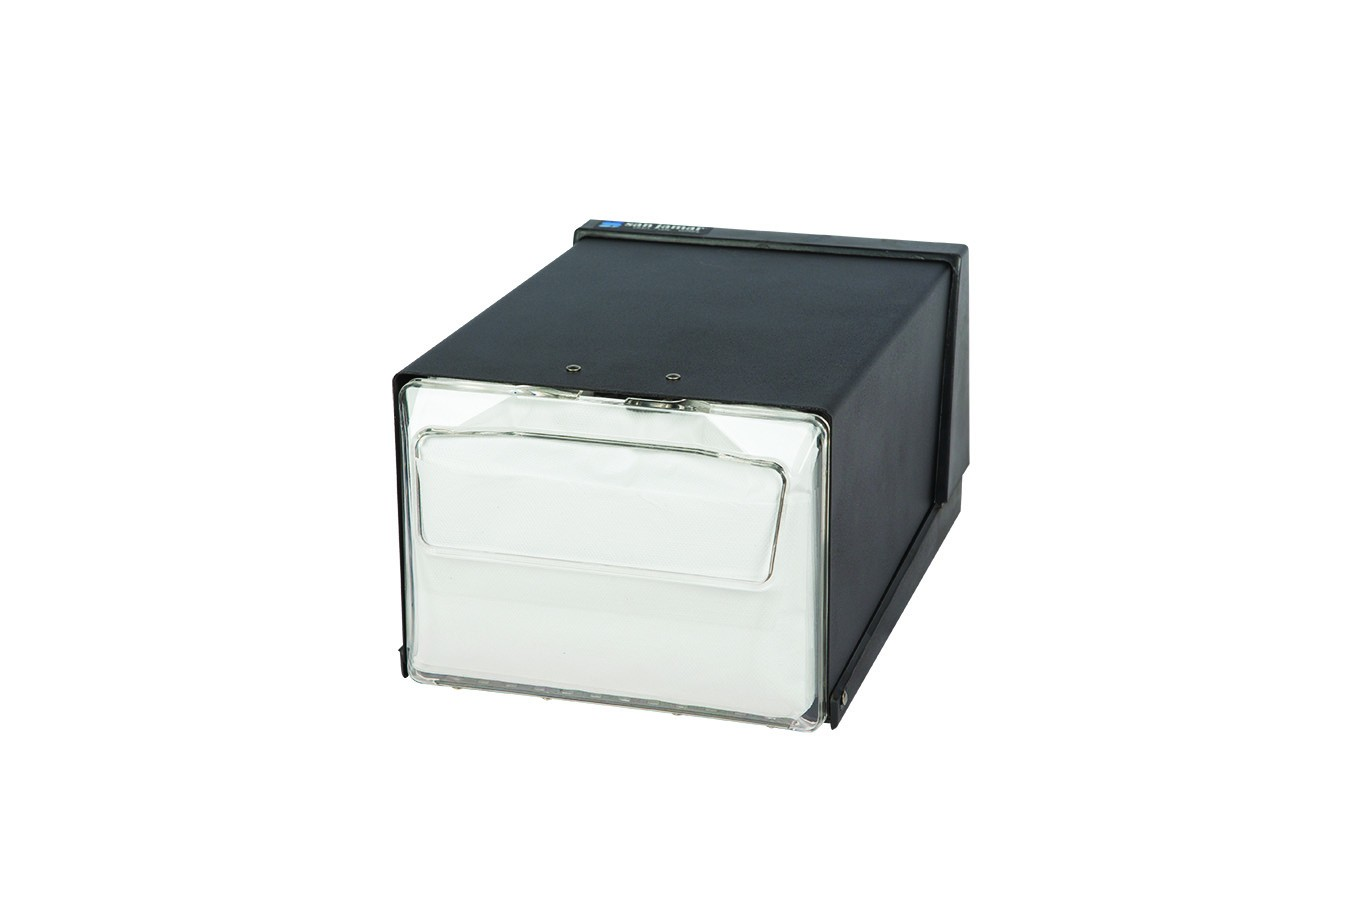 San Jamar H3001CLBK Clear And Black Countertop 300 Fullfold Napkin Dispenser